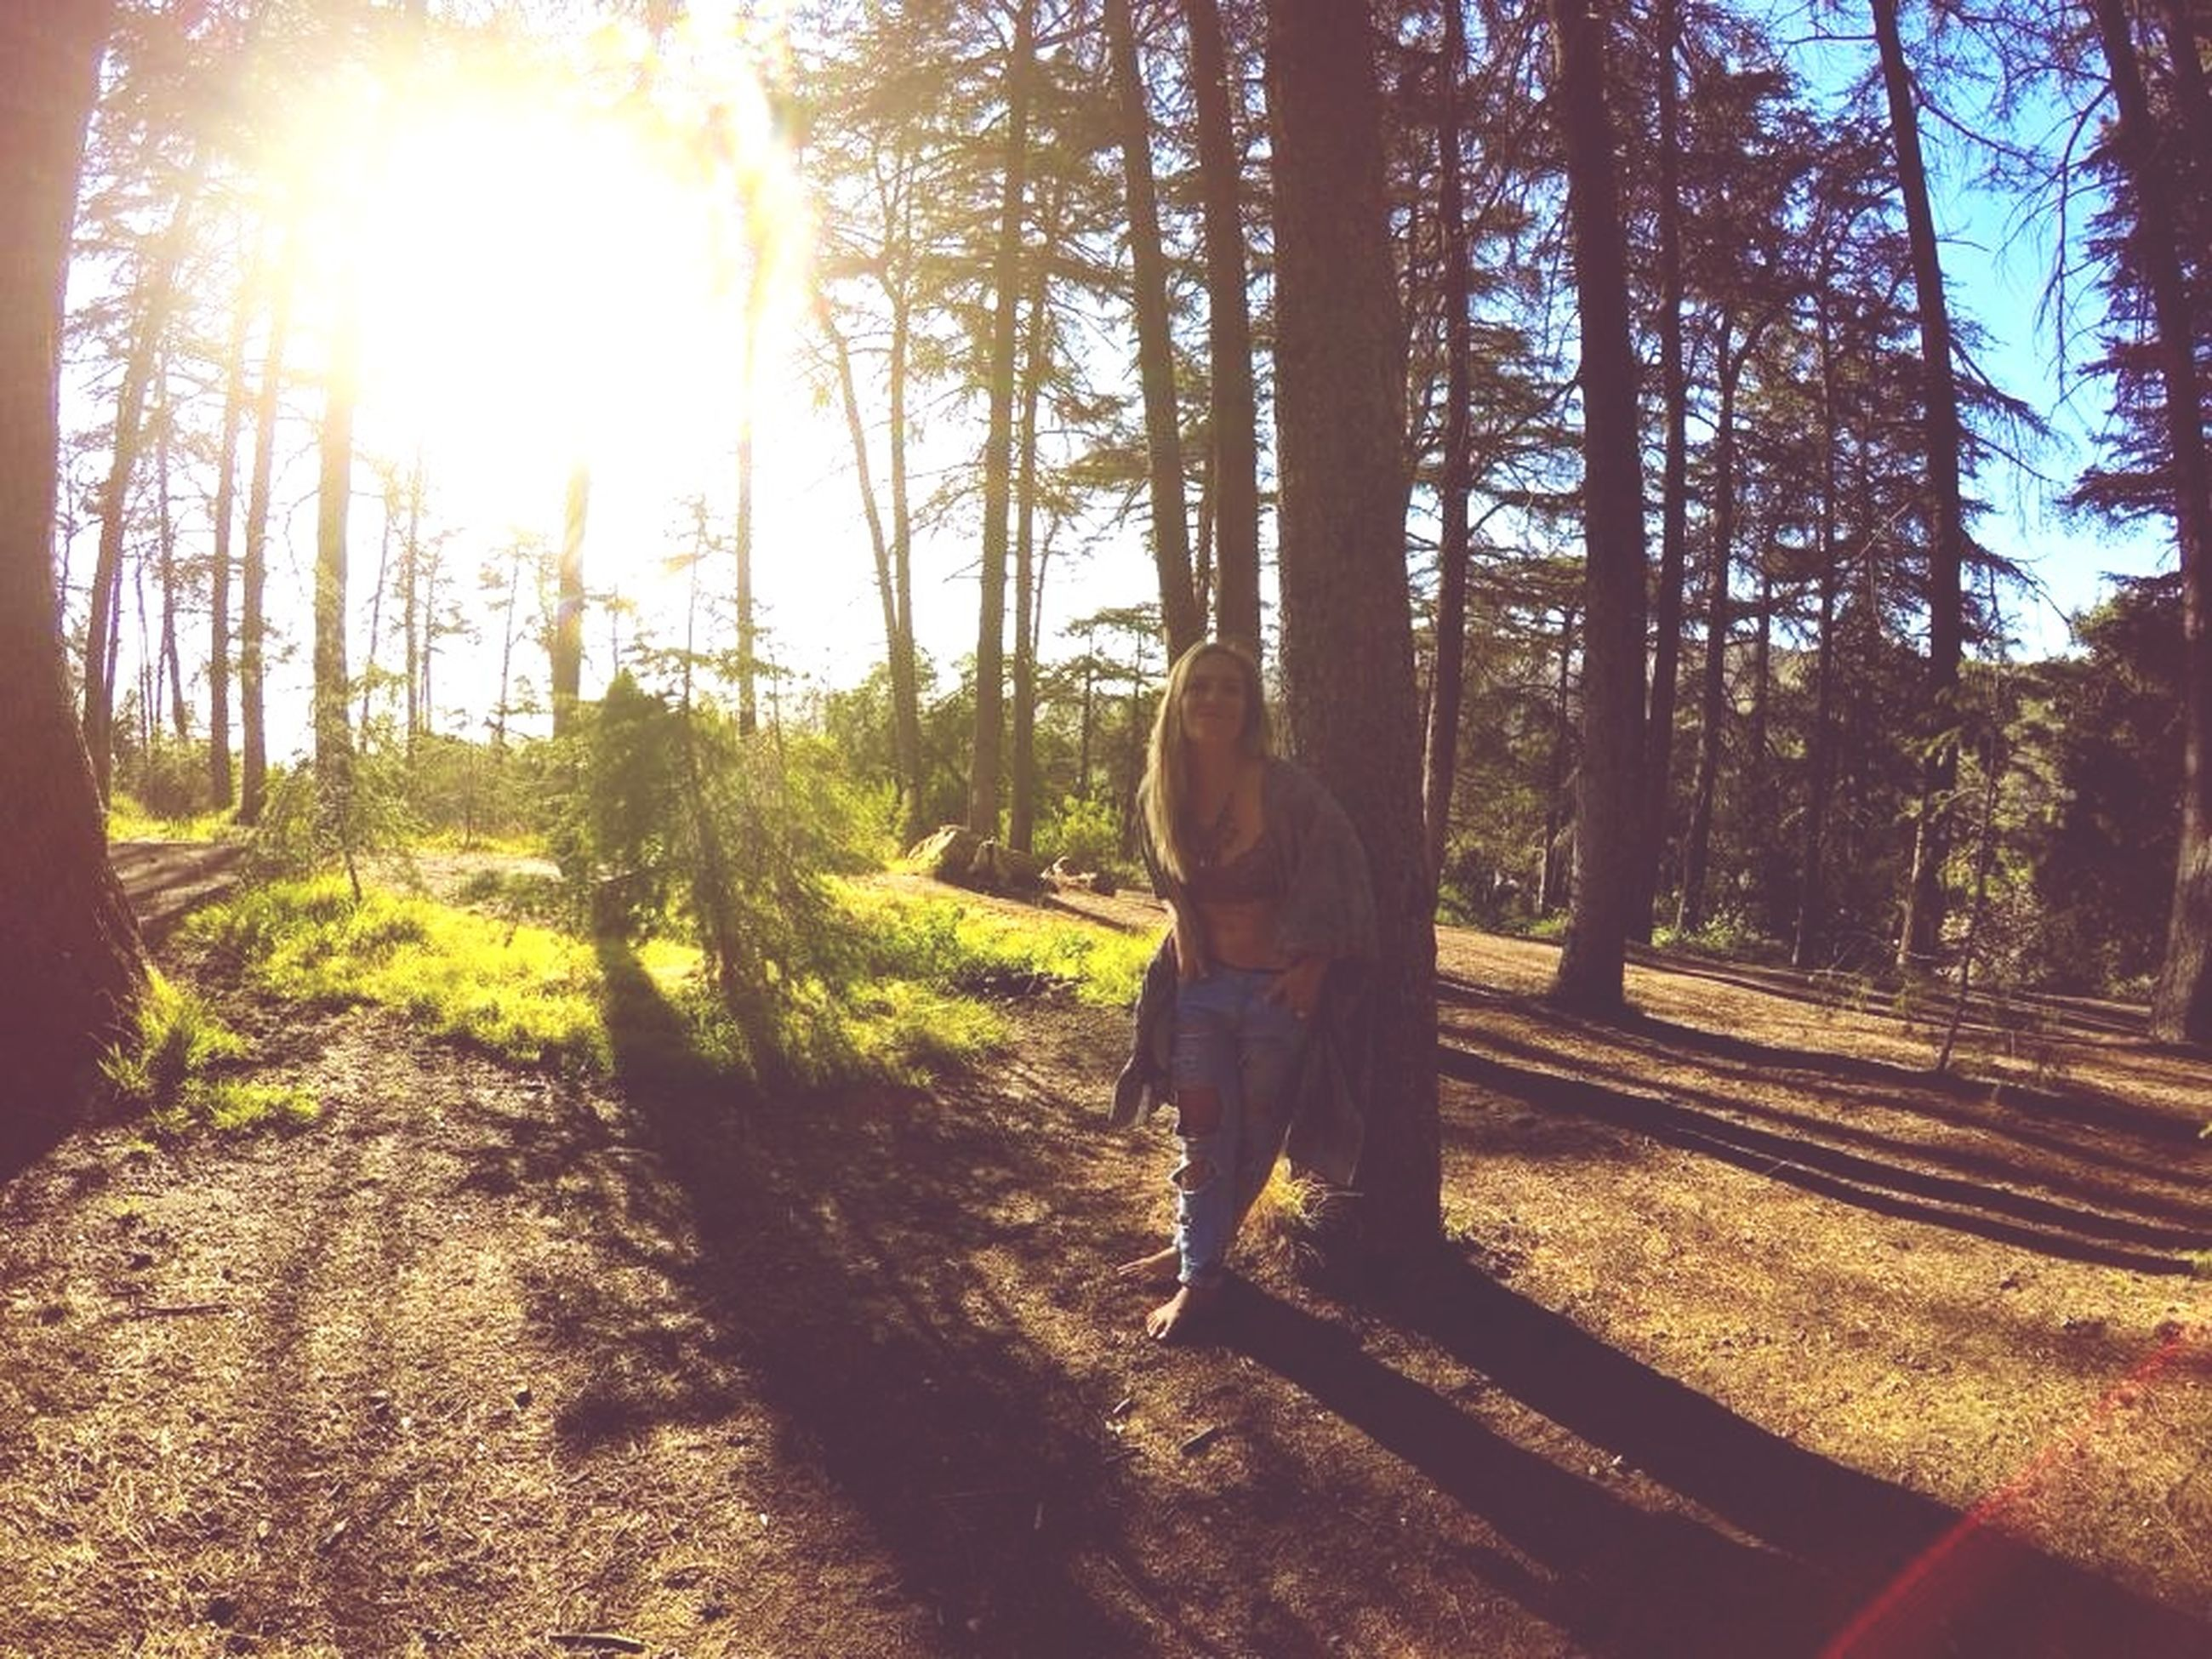 tree, sunbeam, sunlight, sun, lens flare, tree trunk, nature, field, landscape, tranquility, forest, growth, sunny, day, tranquil scene, outdoors, grass, shadow